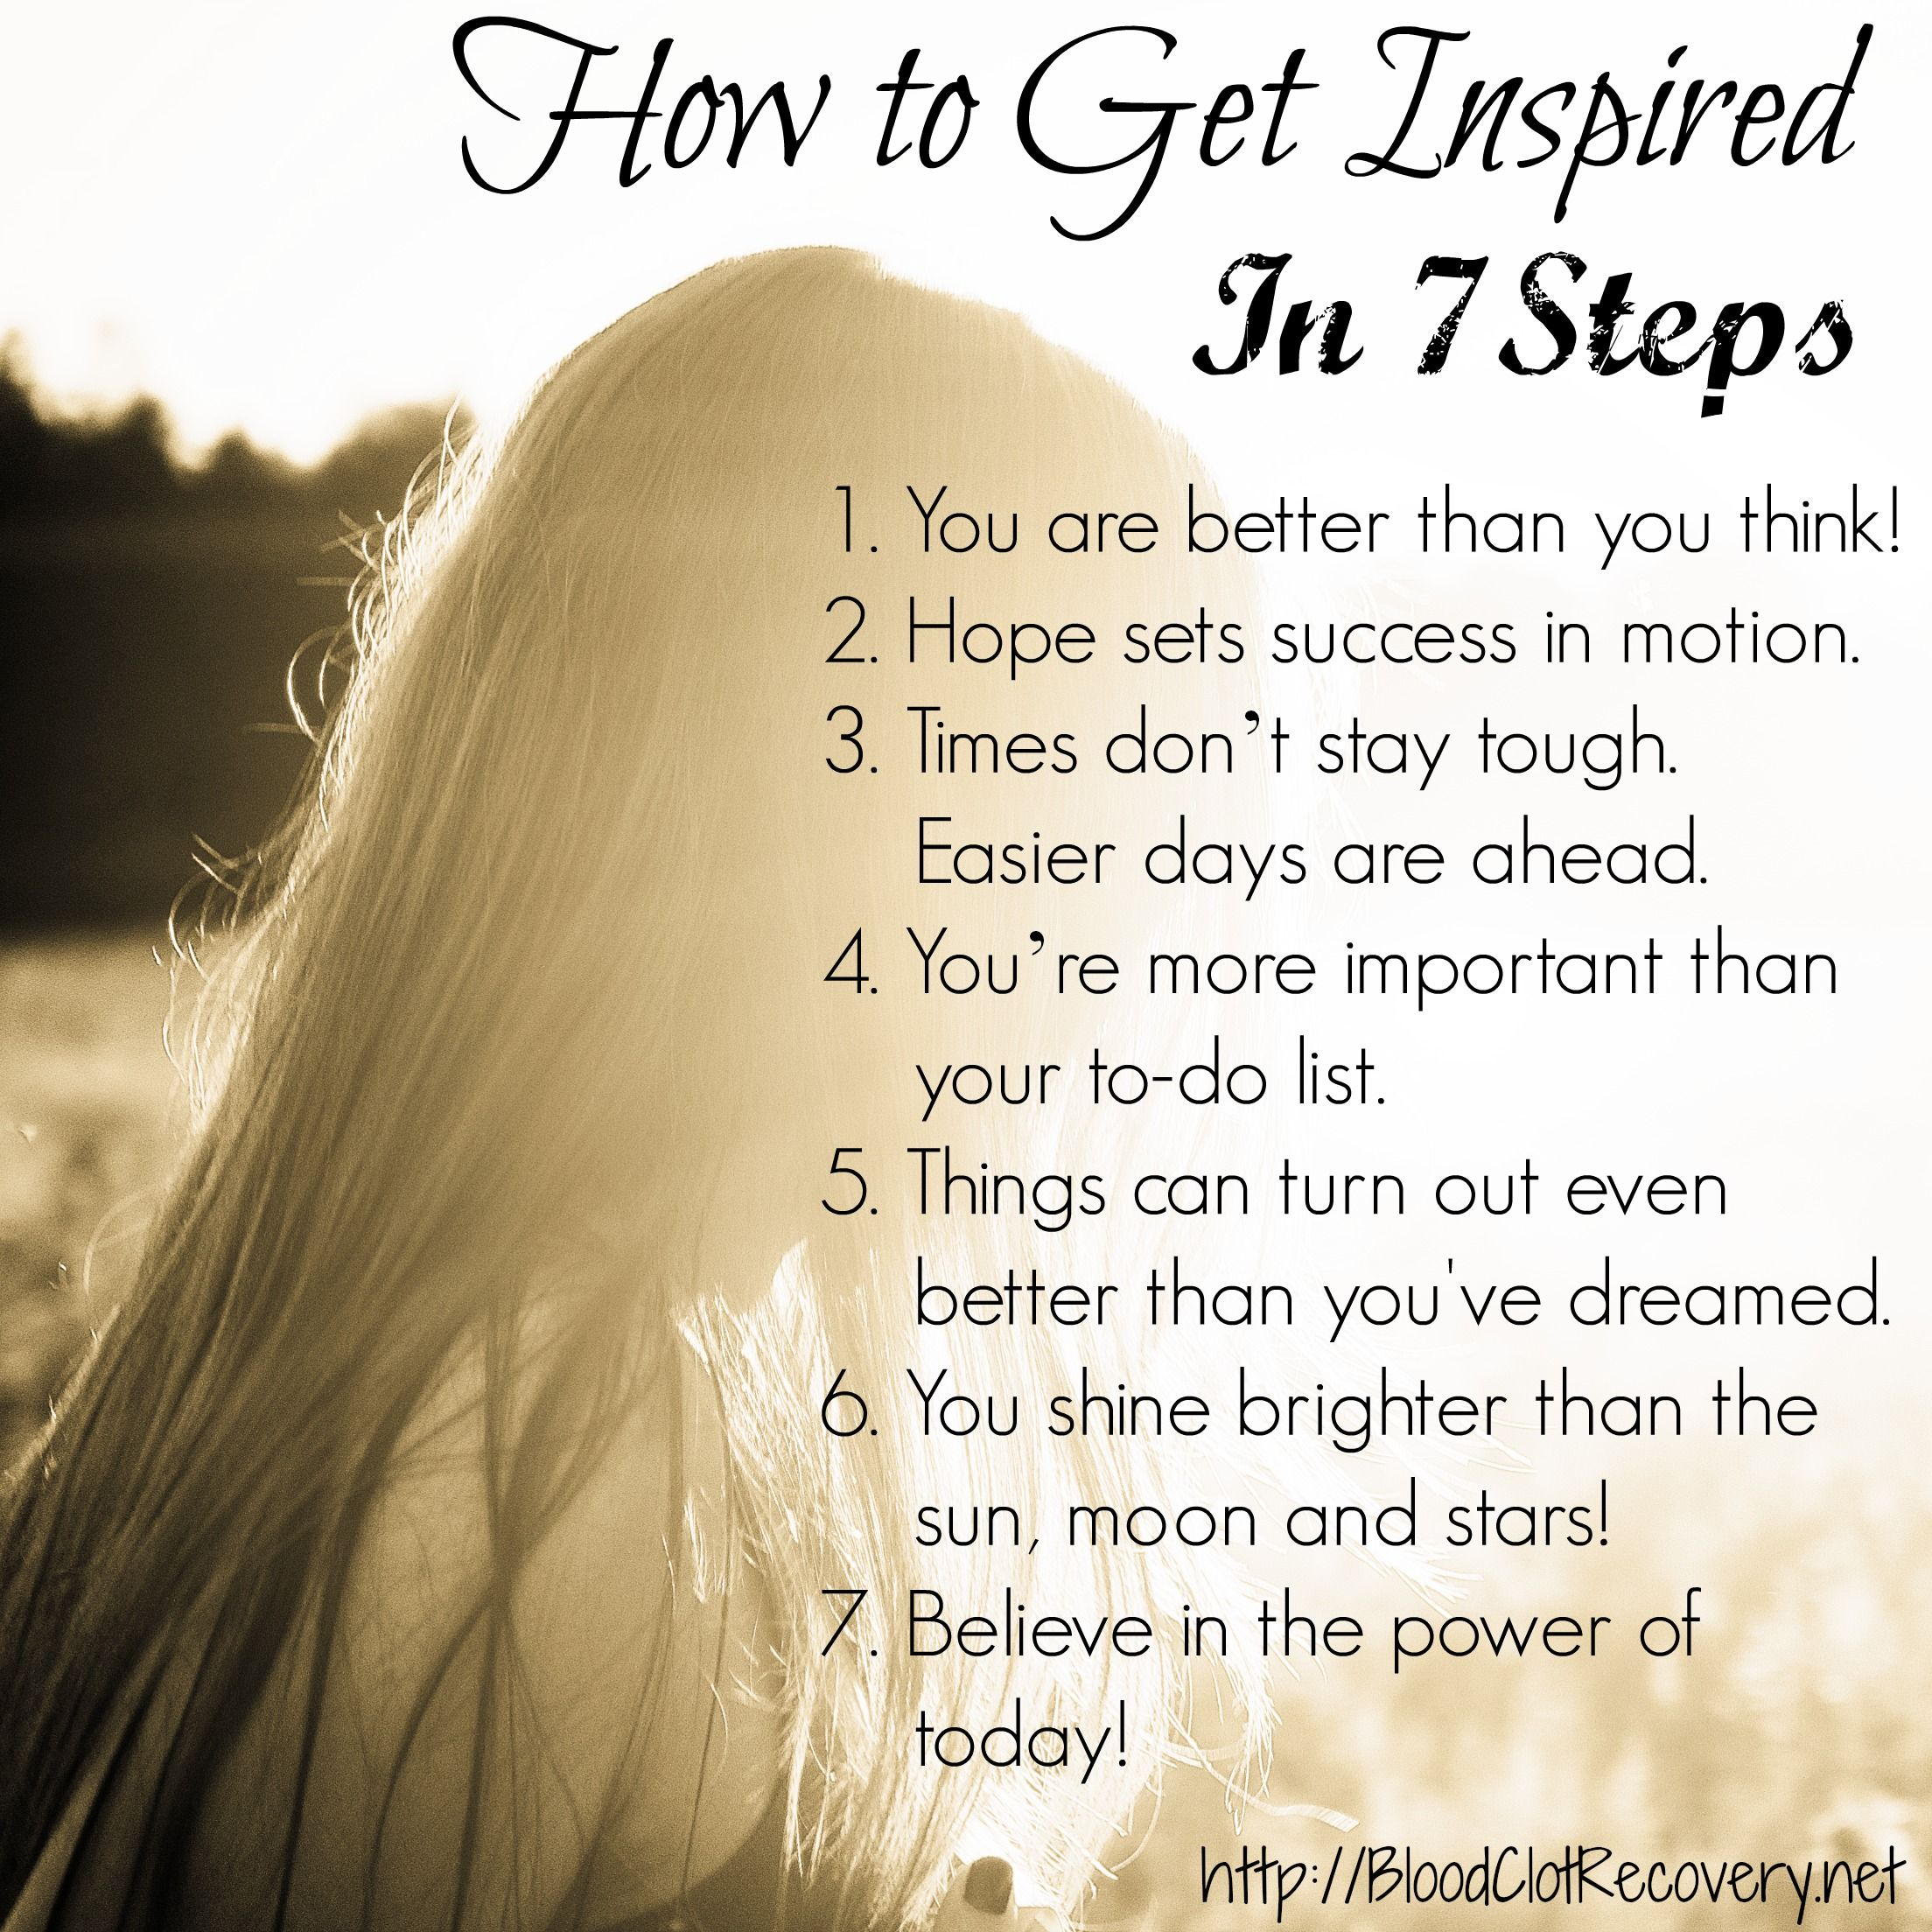 Get Inspired With These Motivational Workout Quotes: How To Get Inspired In 7 Steps